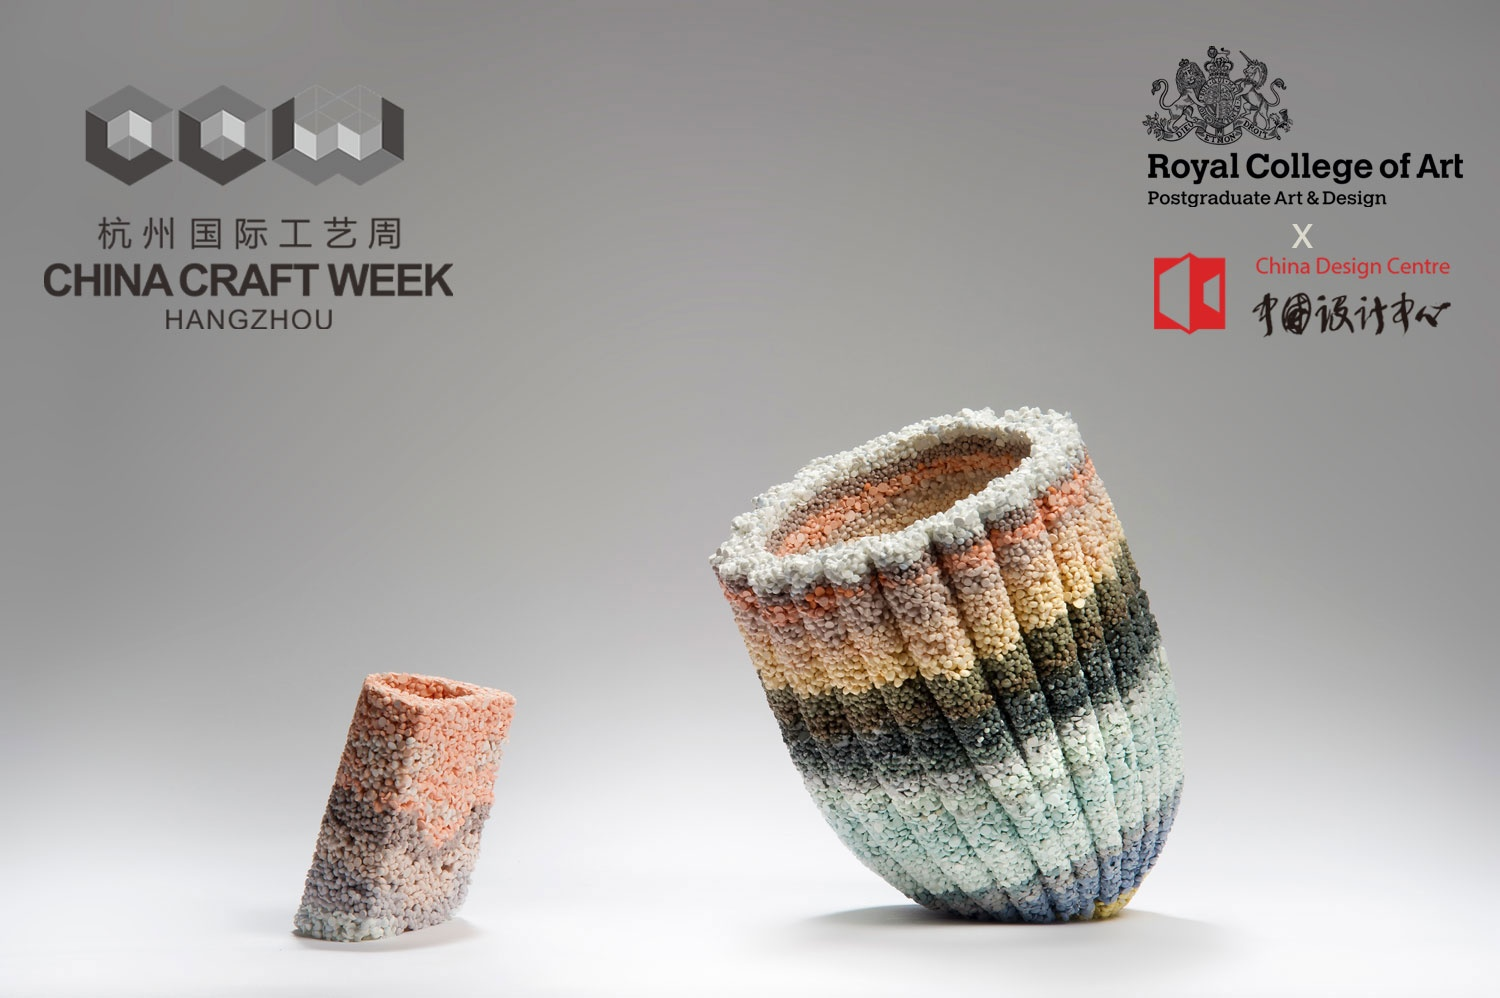 Royal Academy of Art showcases the latest UK trends in glass